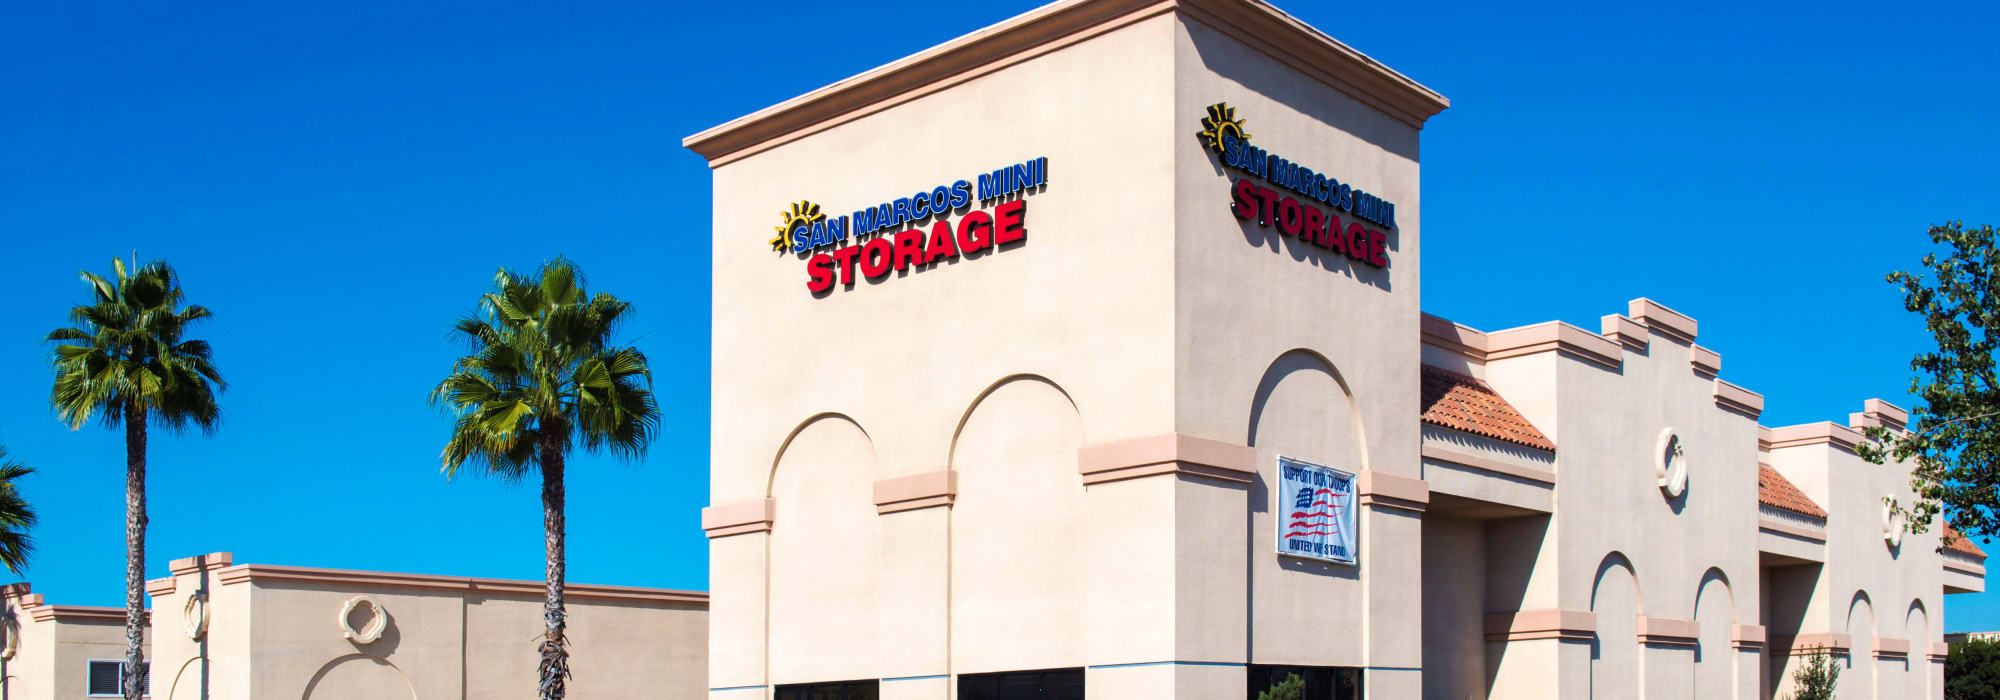 Branding on the exterior of San Marcos Mini Storage in San Marcos, California